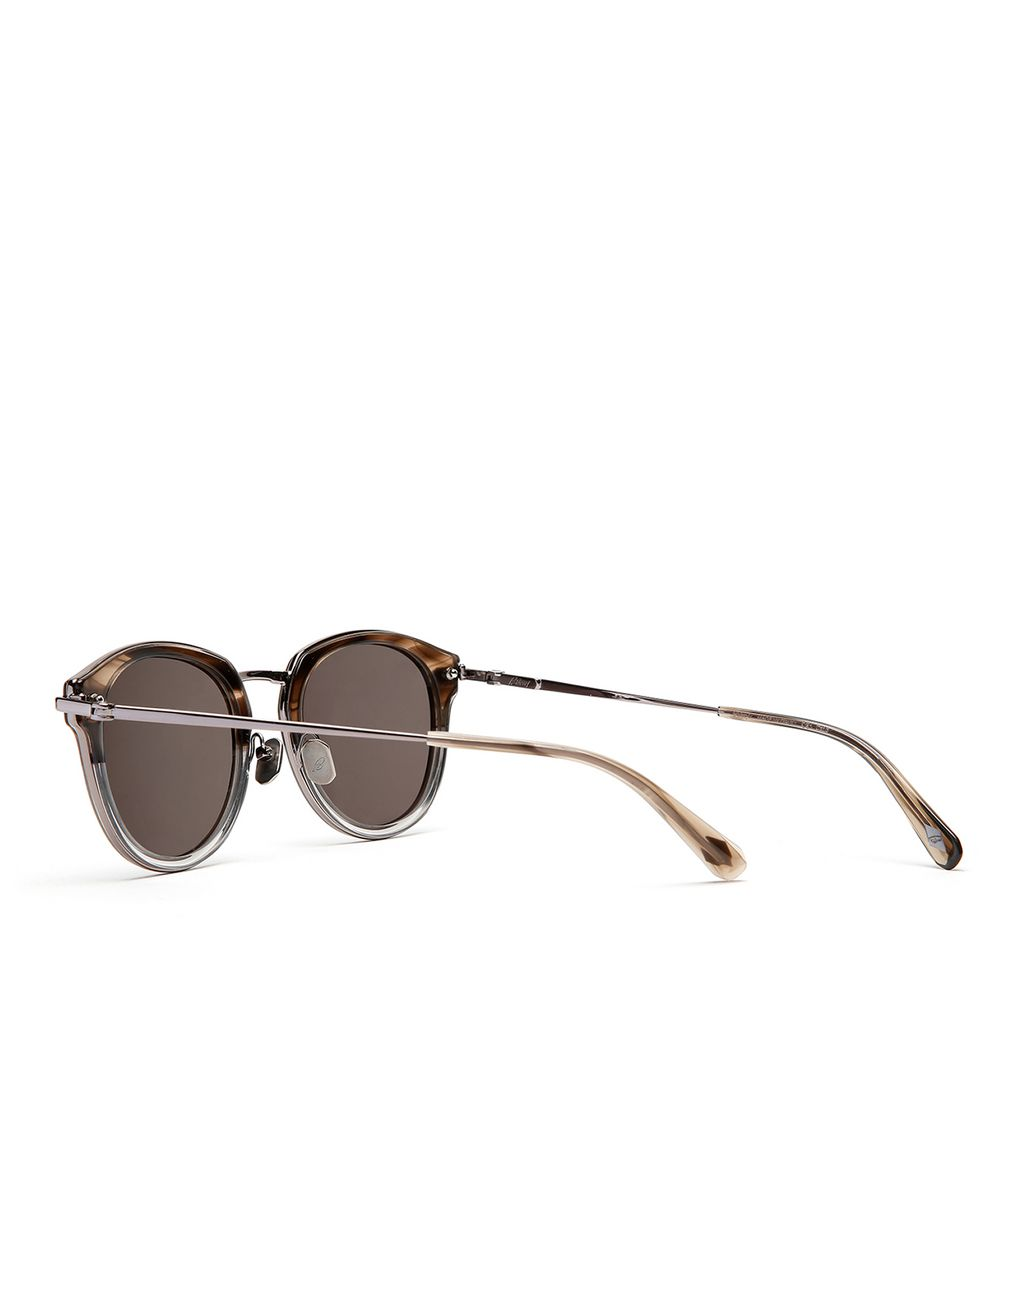 BRIONI Grey and Brown Sunglasses with Grey Lenses  Sunglasses [*** pickupInStoreShippingNotGuaranteed_info ***] d